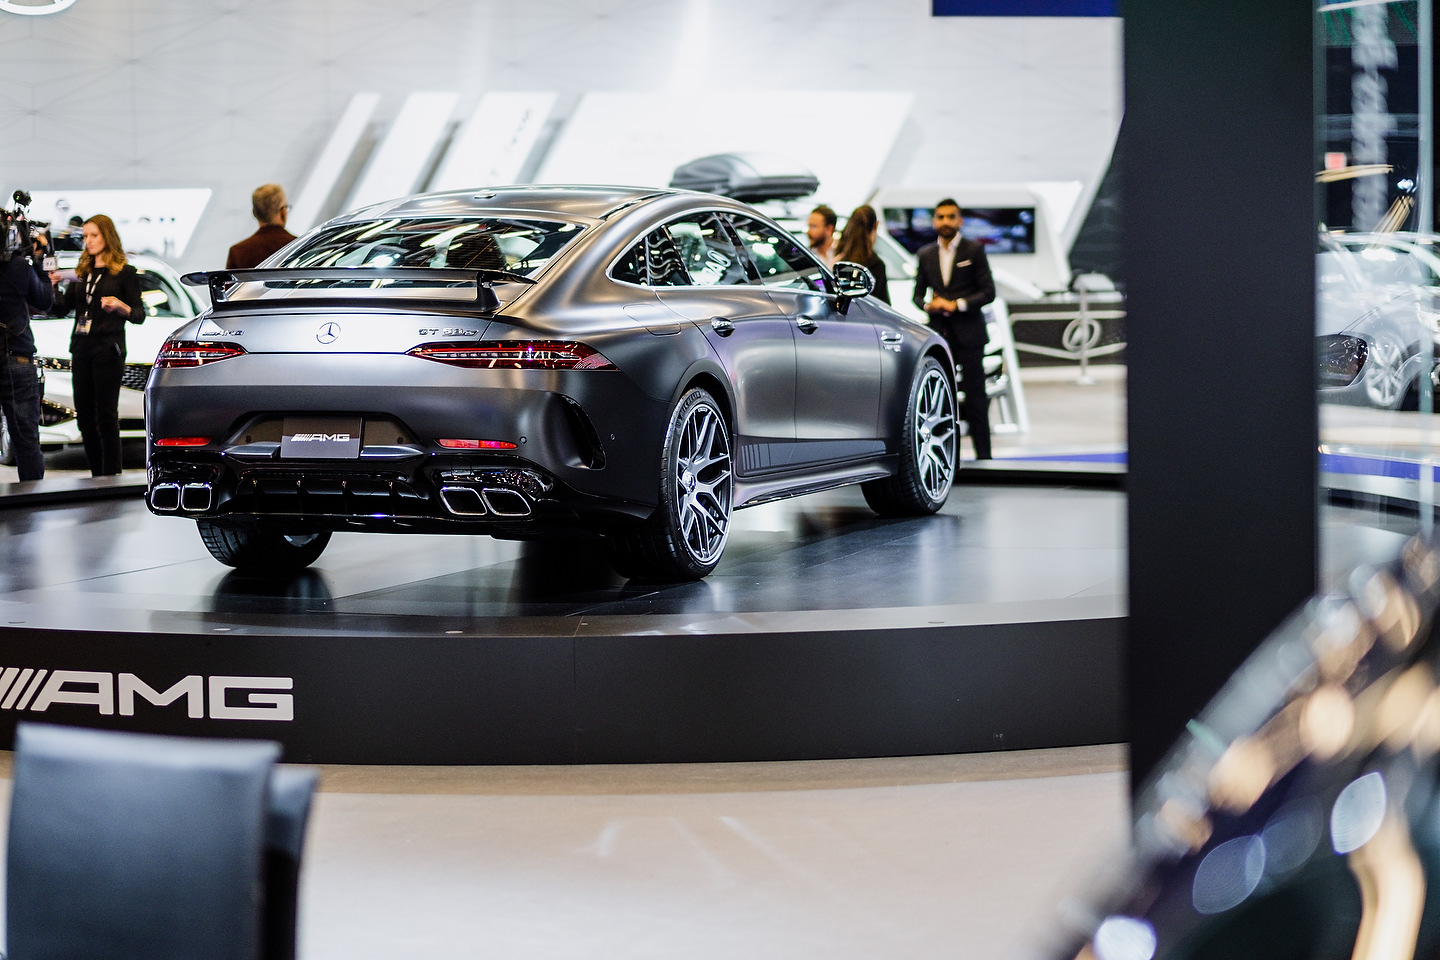 2019 Mercedes-AMG GT 63S 4MATIC | Photo: Olivier Delorme